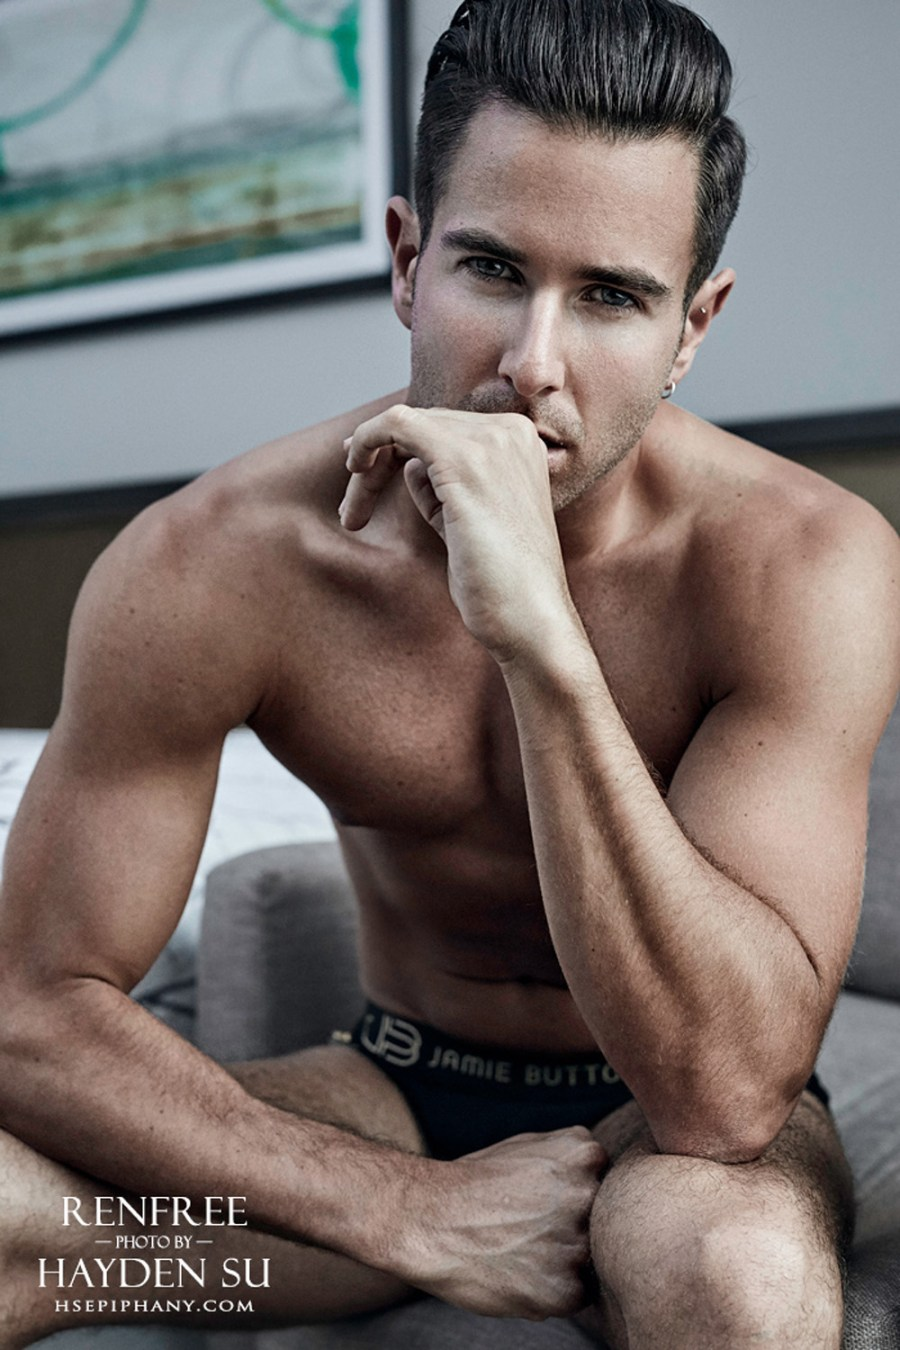 Holy Moly! have you seen this pictorial? We are enchanted by the beauty of British Dancer/Choreographer Aaron Renfree photographed by Hayden Su for Fashionably Male in an exclusive. Aaron unfolds a natural way in front of the camera lens.